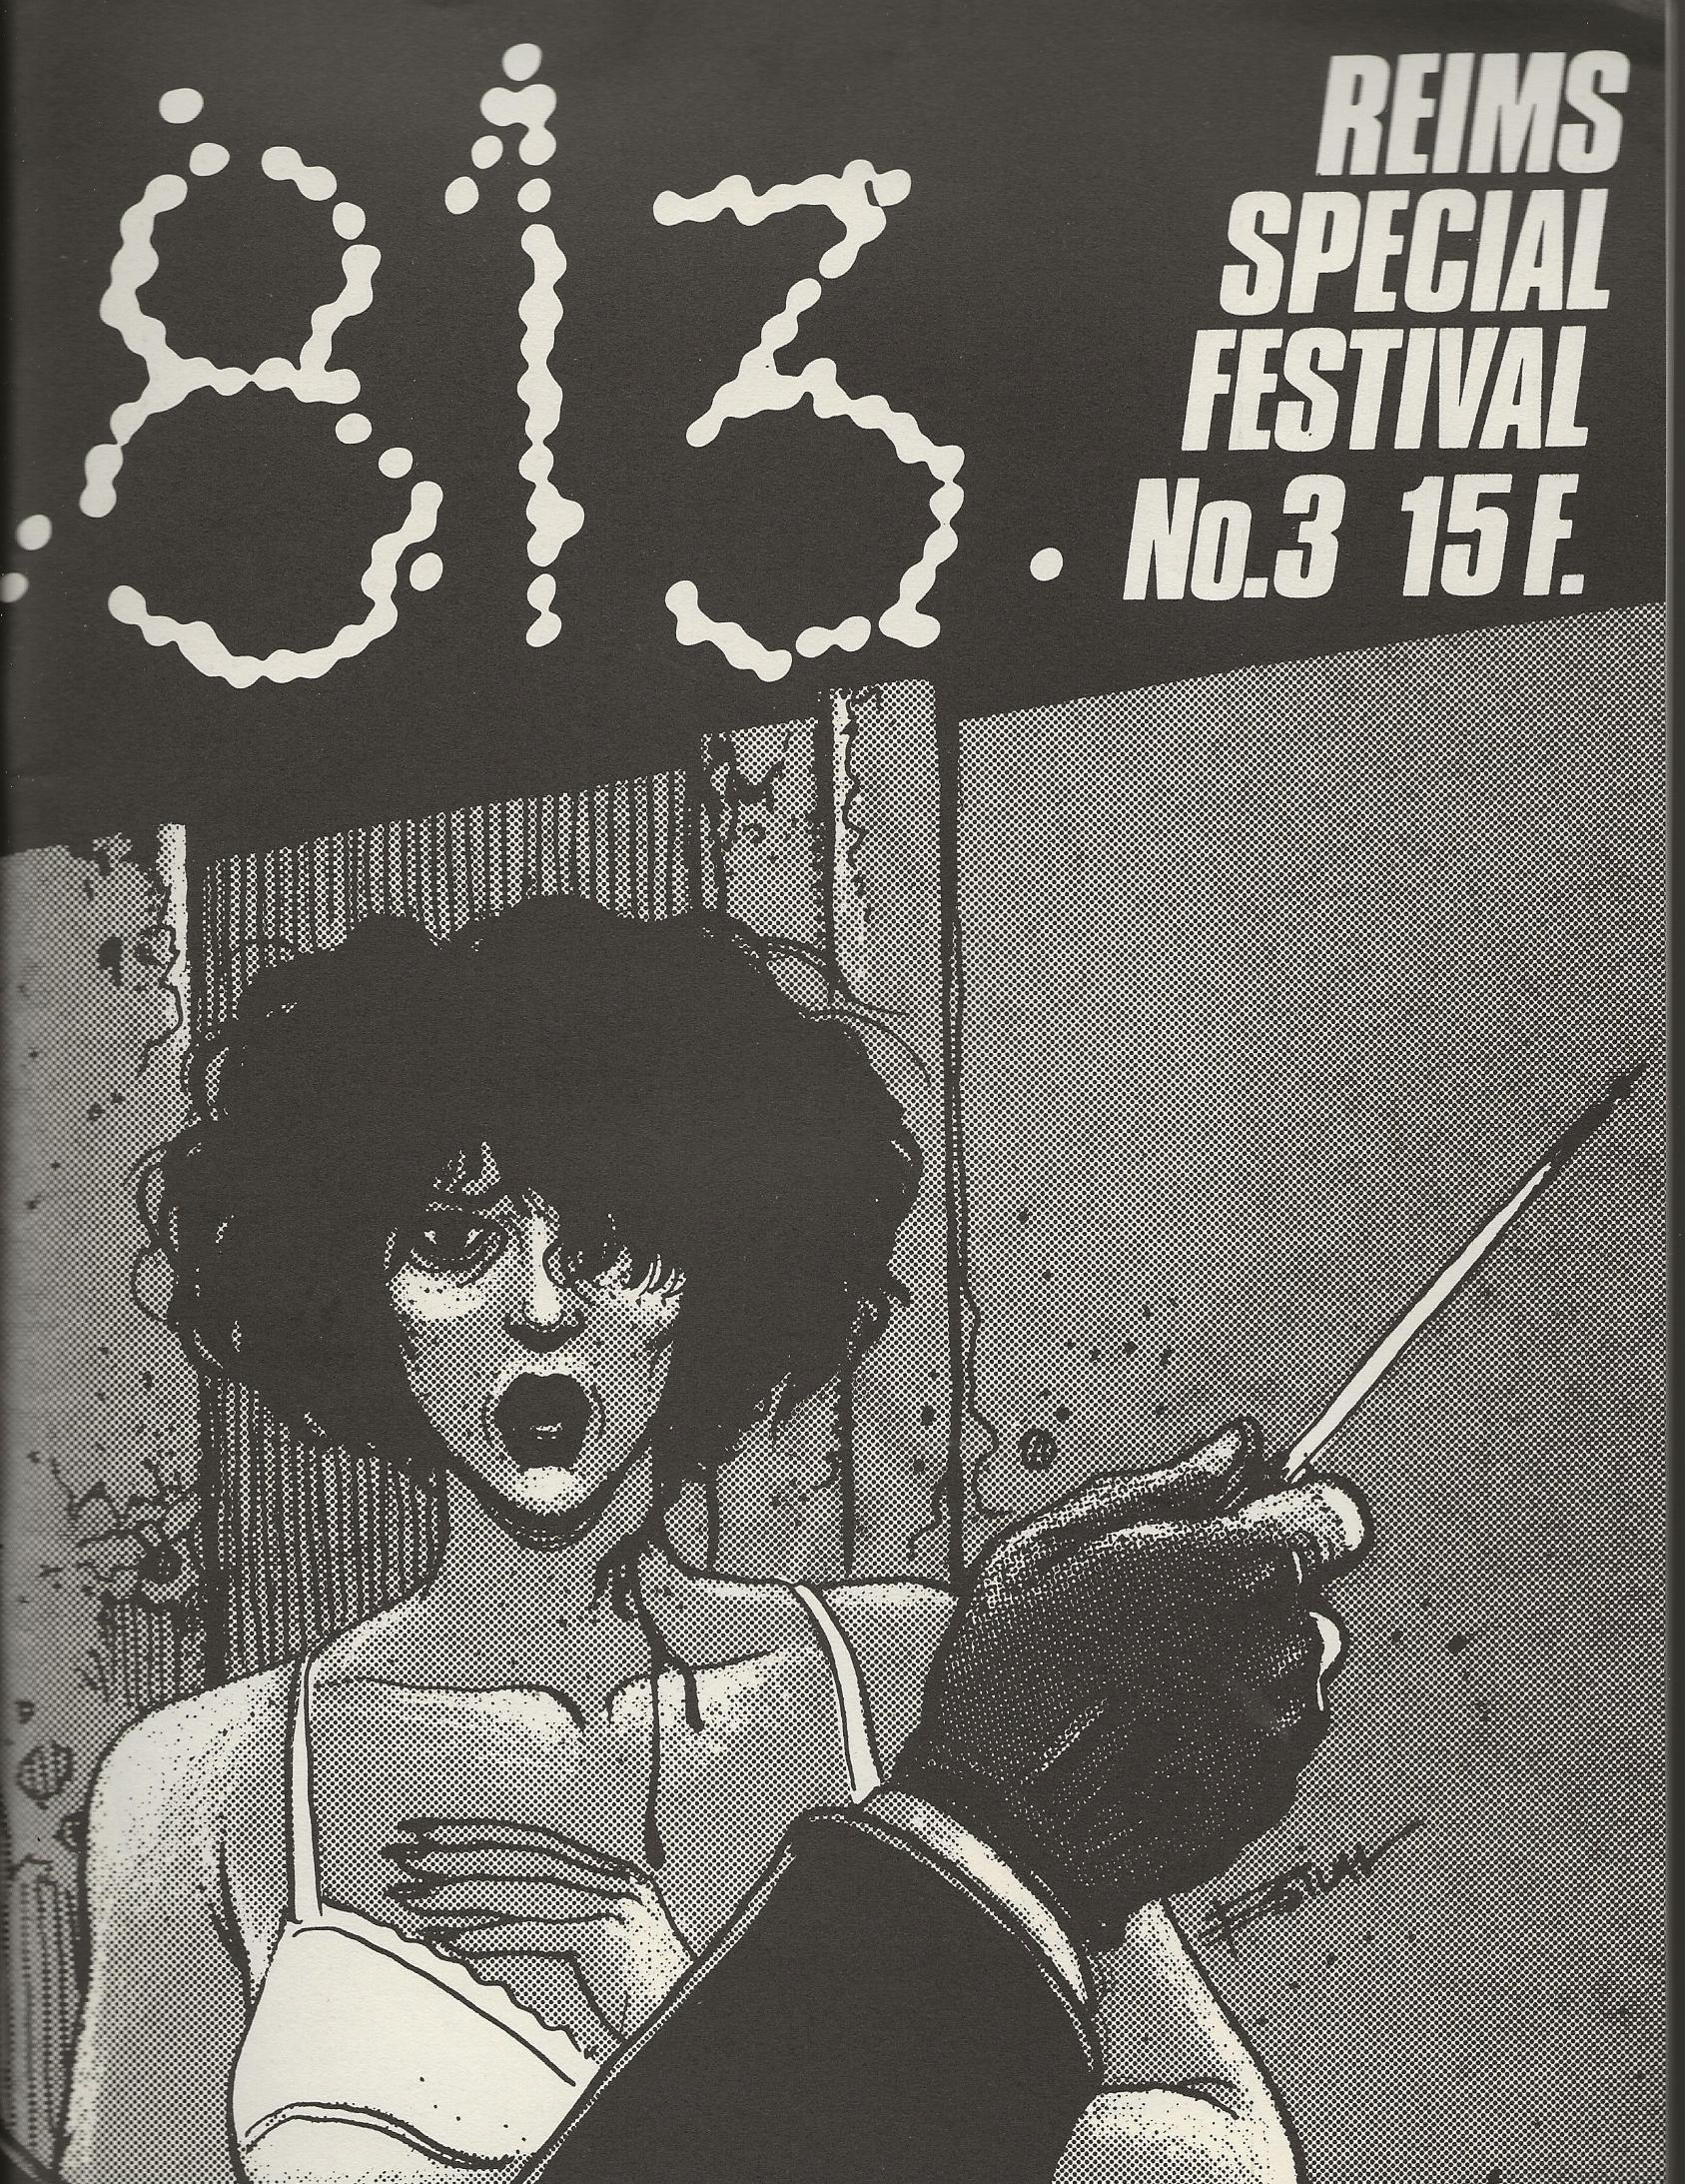 Image for 813 ~ No. 3 ~ Reims Special Festival